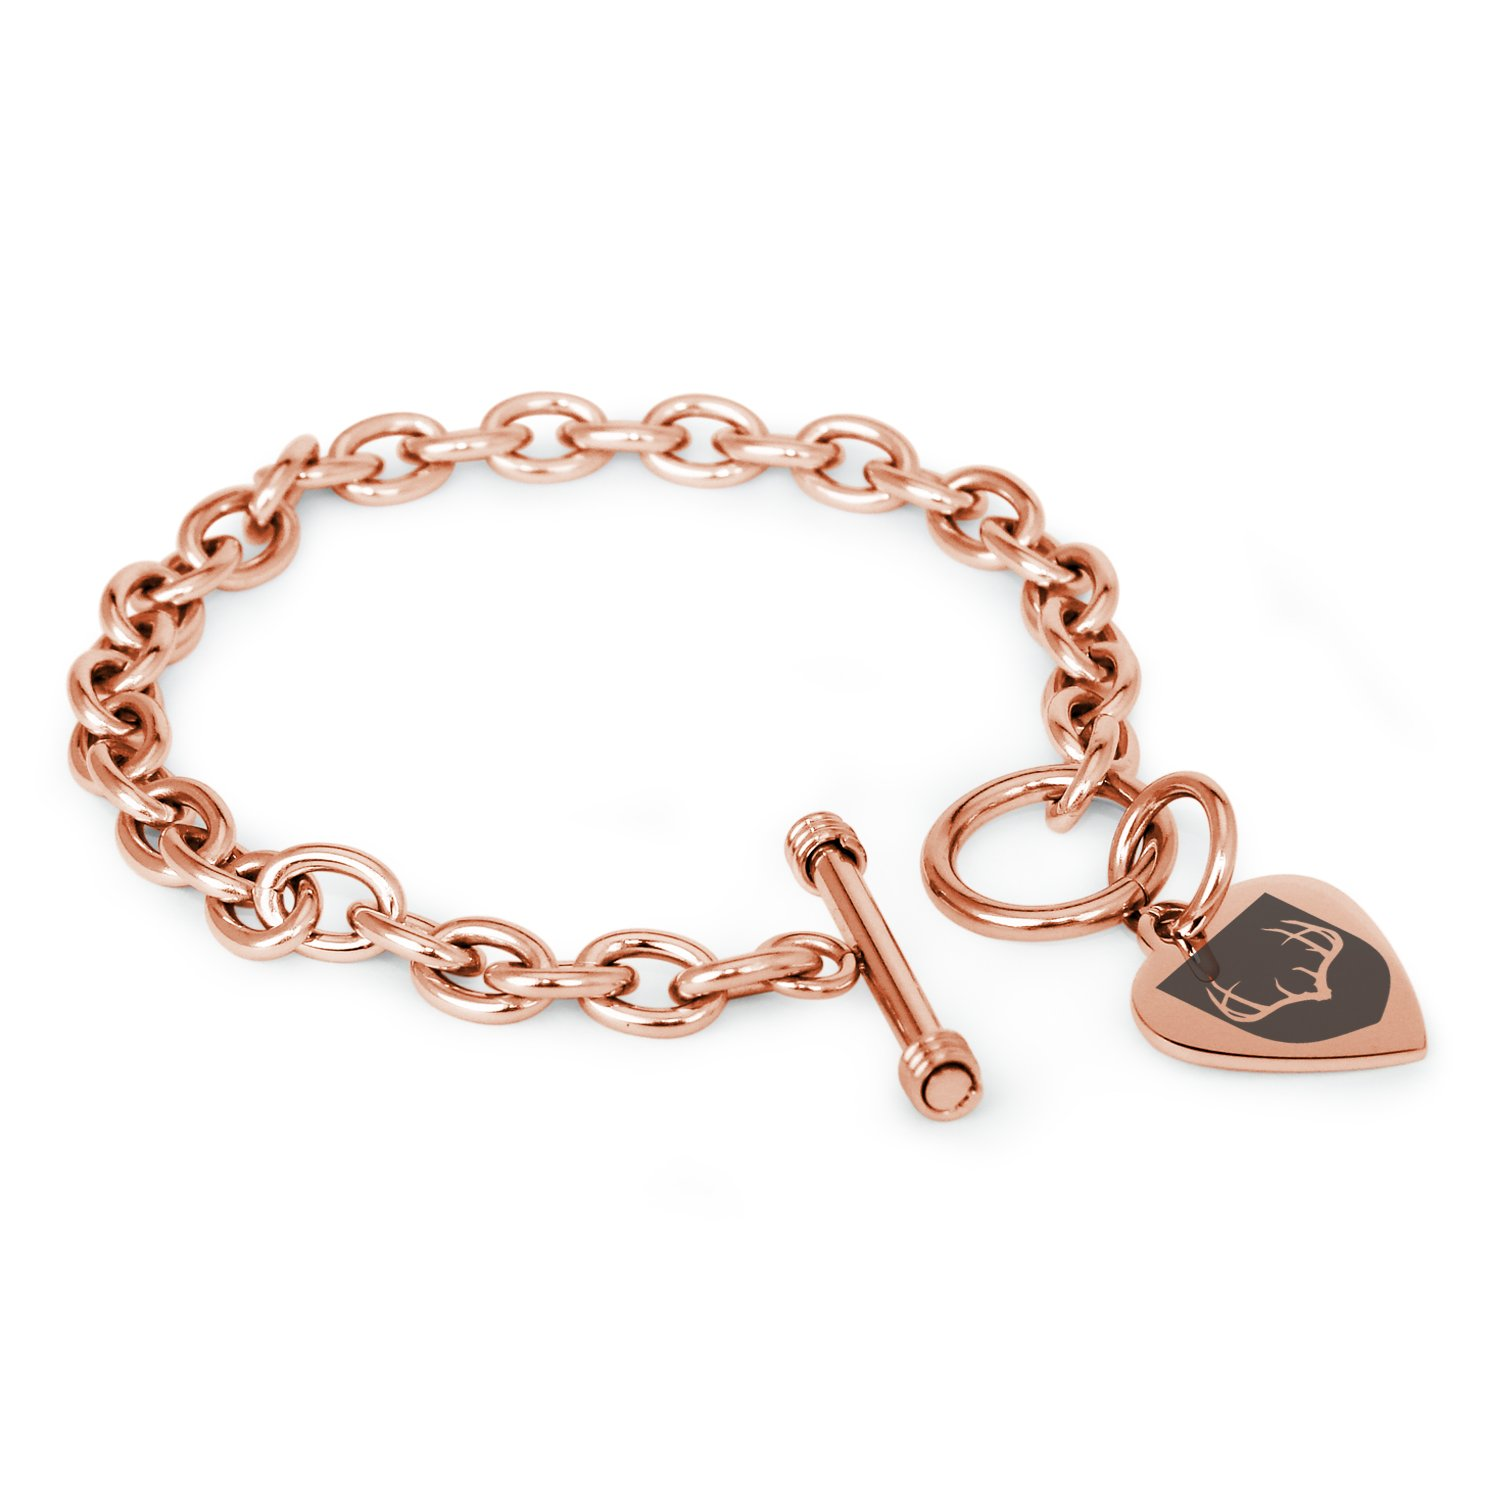 Tioneer Rose Gold Plated Stainless Steel Antlers Fortitude Coat of Arms Shield Symbols Heart Charm, Bracelet Only